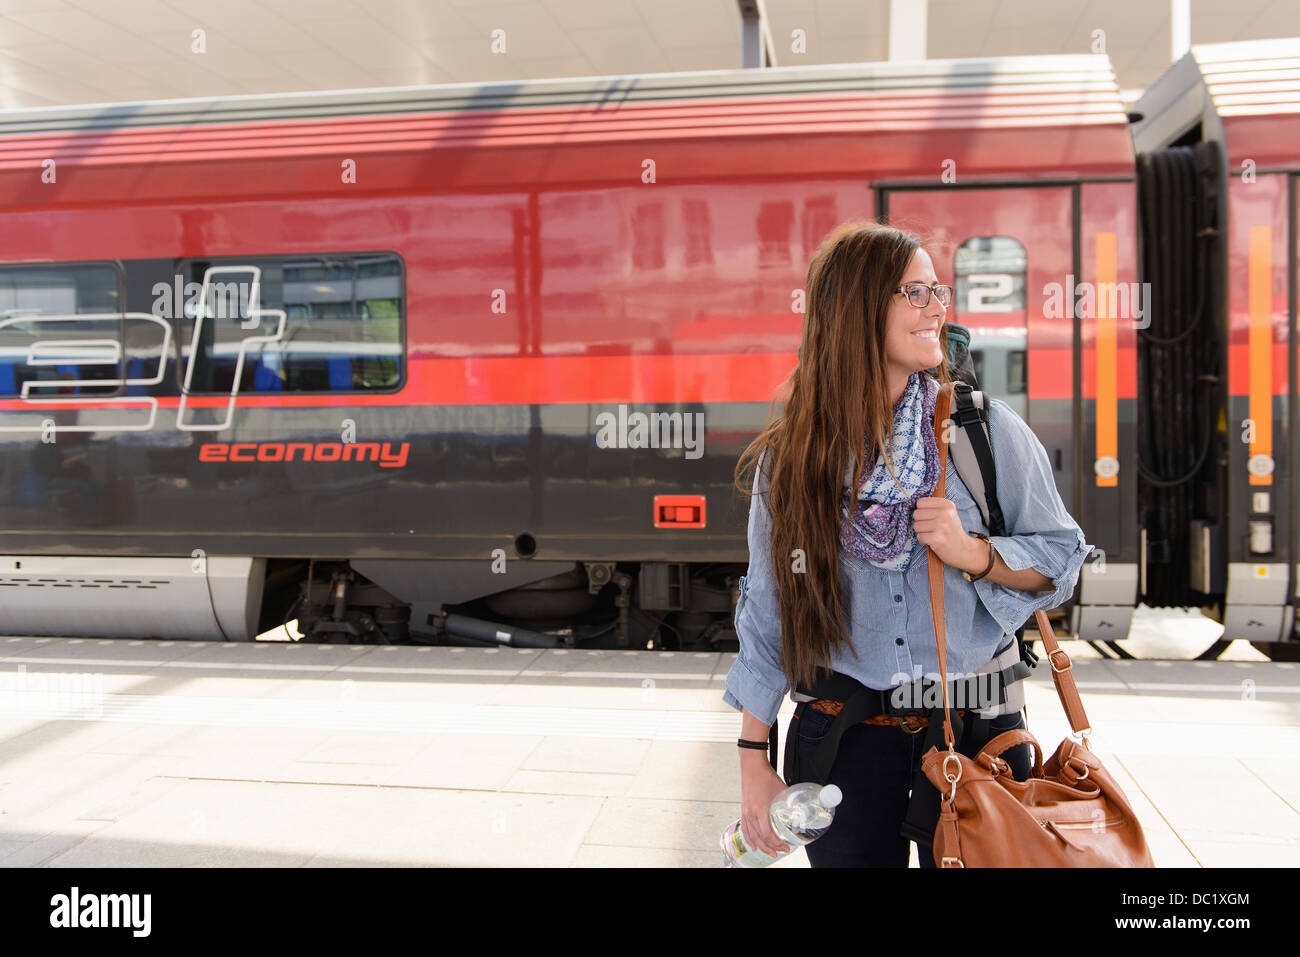 Female backpacker arriving in train station, Salzburg, Austria - Stock Image